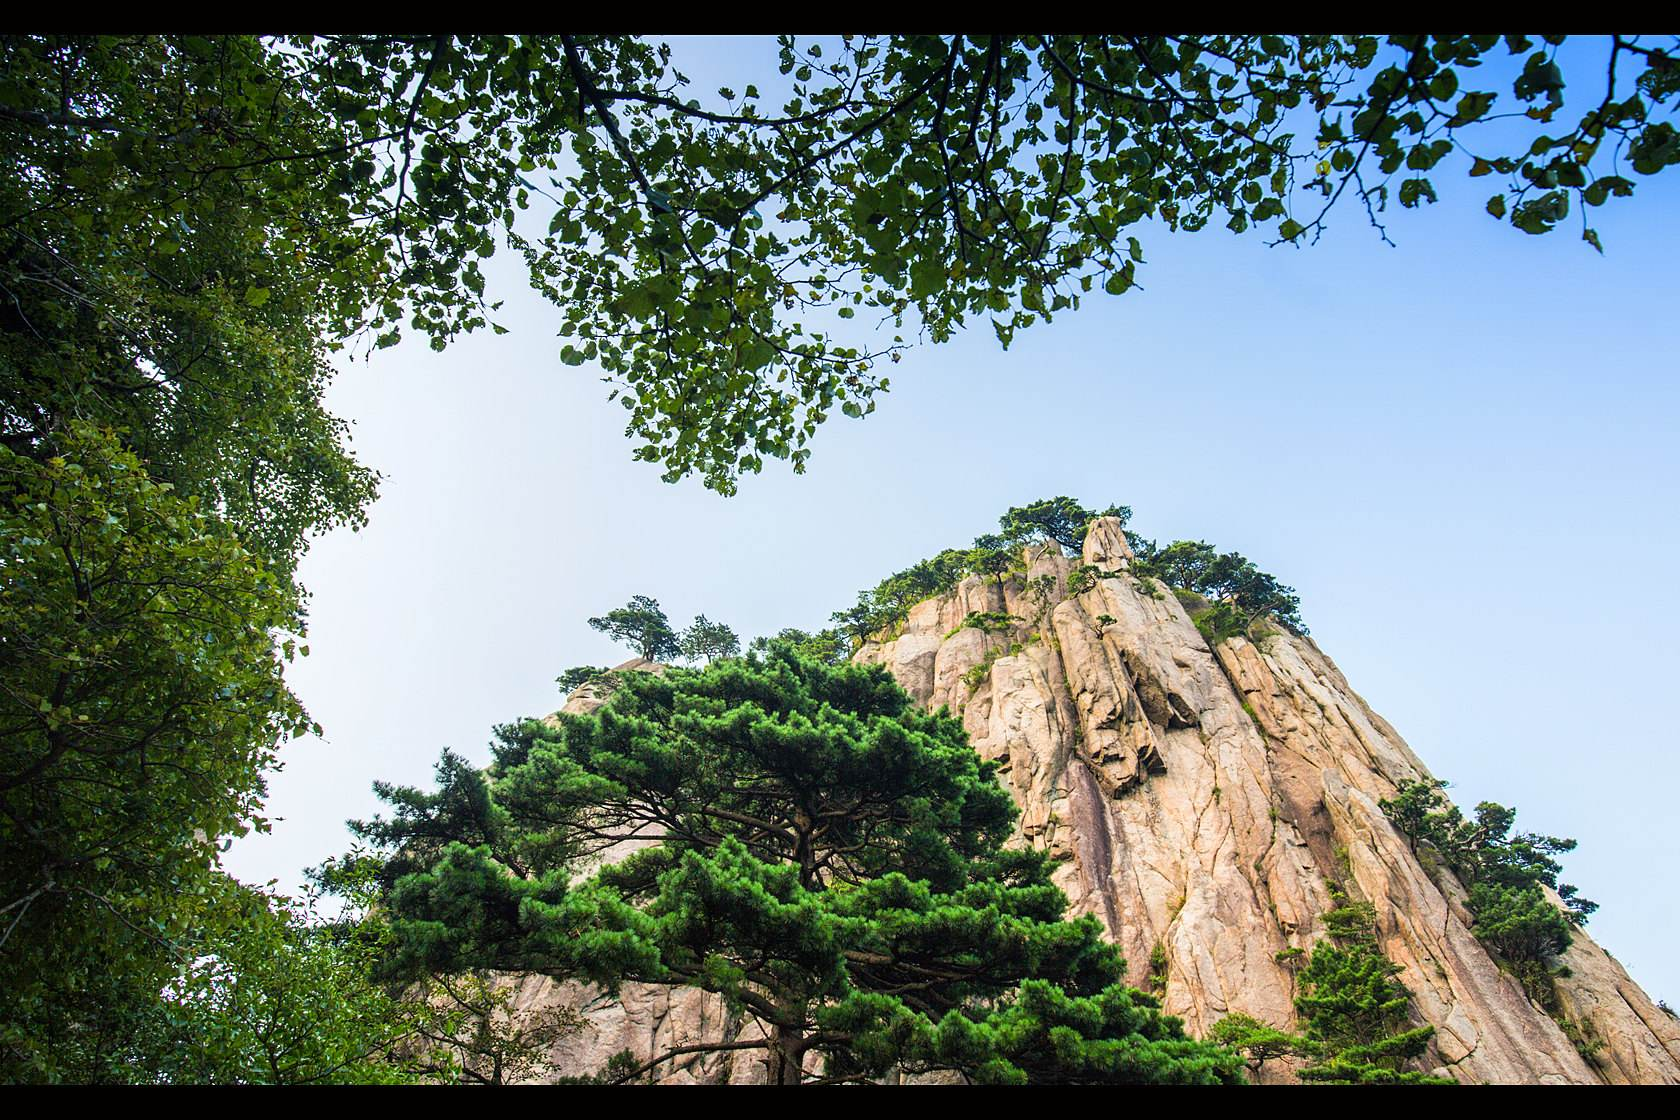 3-Day_Beijing_Huangshan_Sightseeing_Tour_with_Round-trip_High-speed_Train_2.jpg